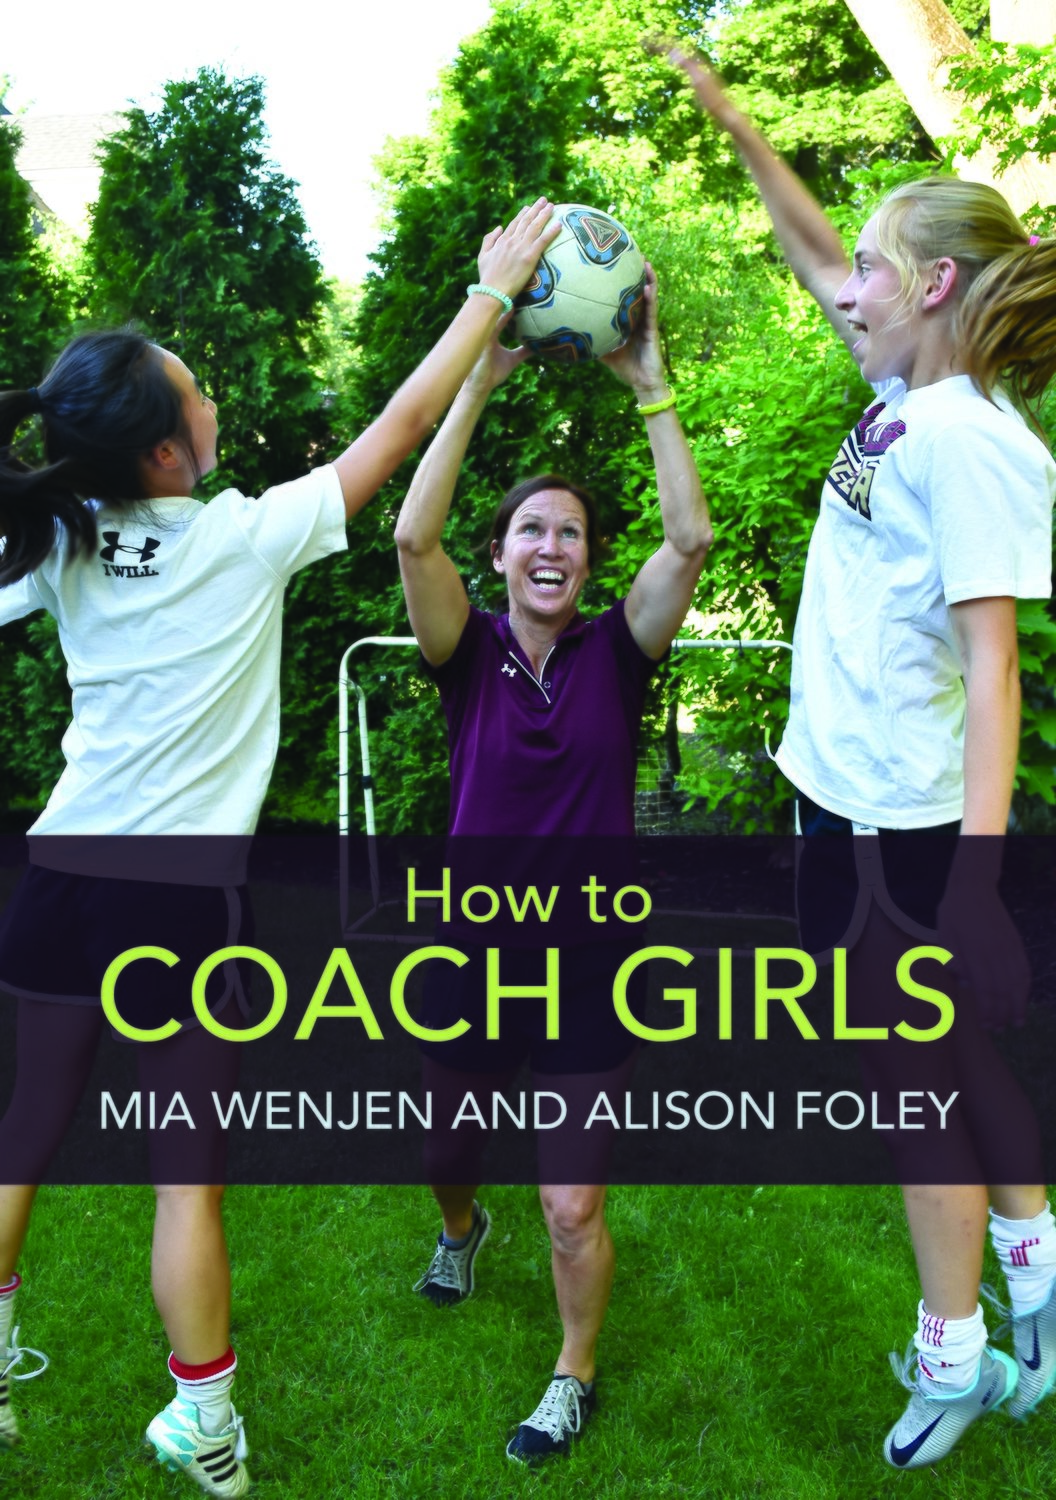 HOW TO COACH GIRLS by Mia Wenjen and Alison Foley  (FREE SHIPPING)